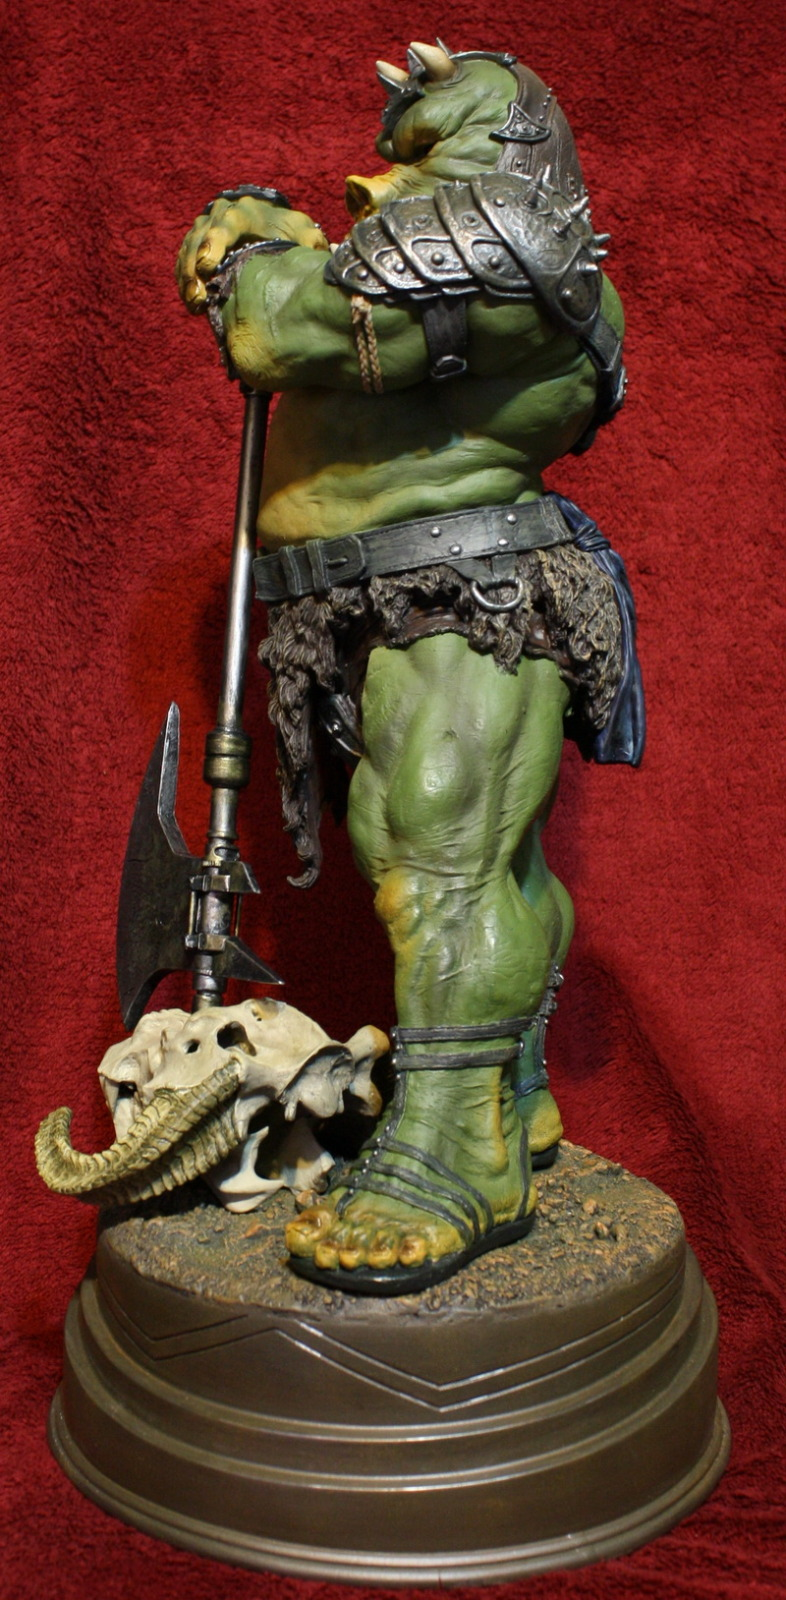 STAR WARS: GAMORREAN EXECUTIONER Mythos statue 22